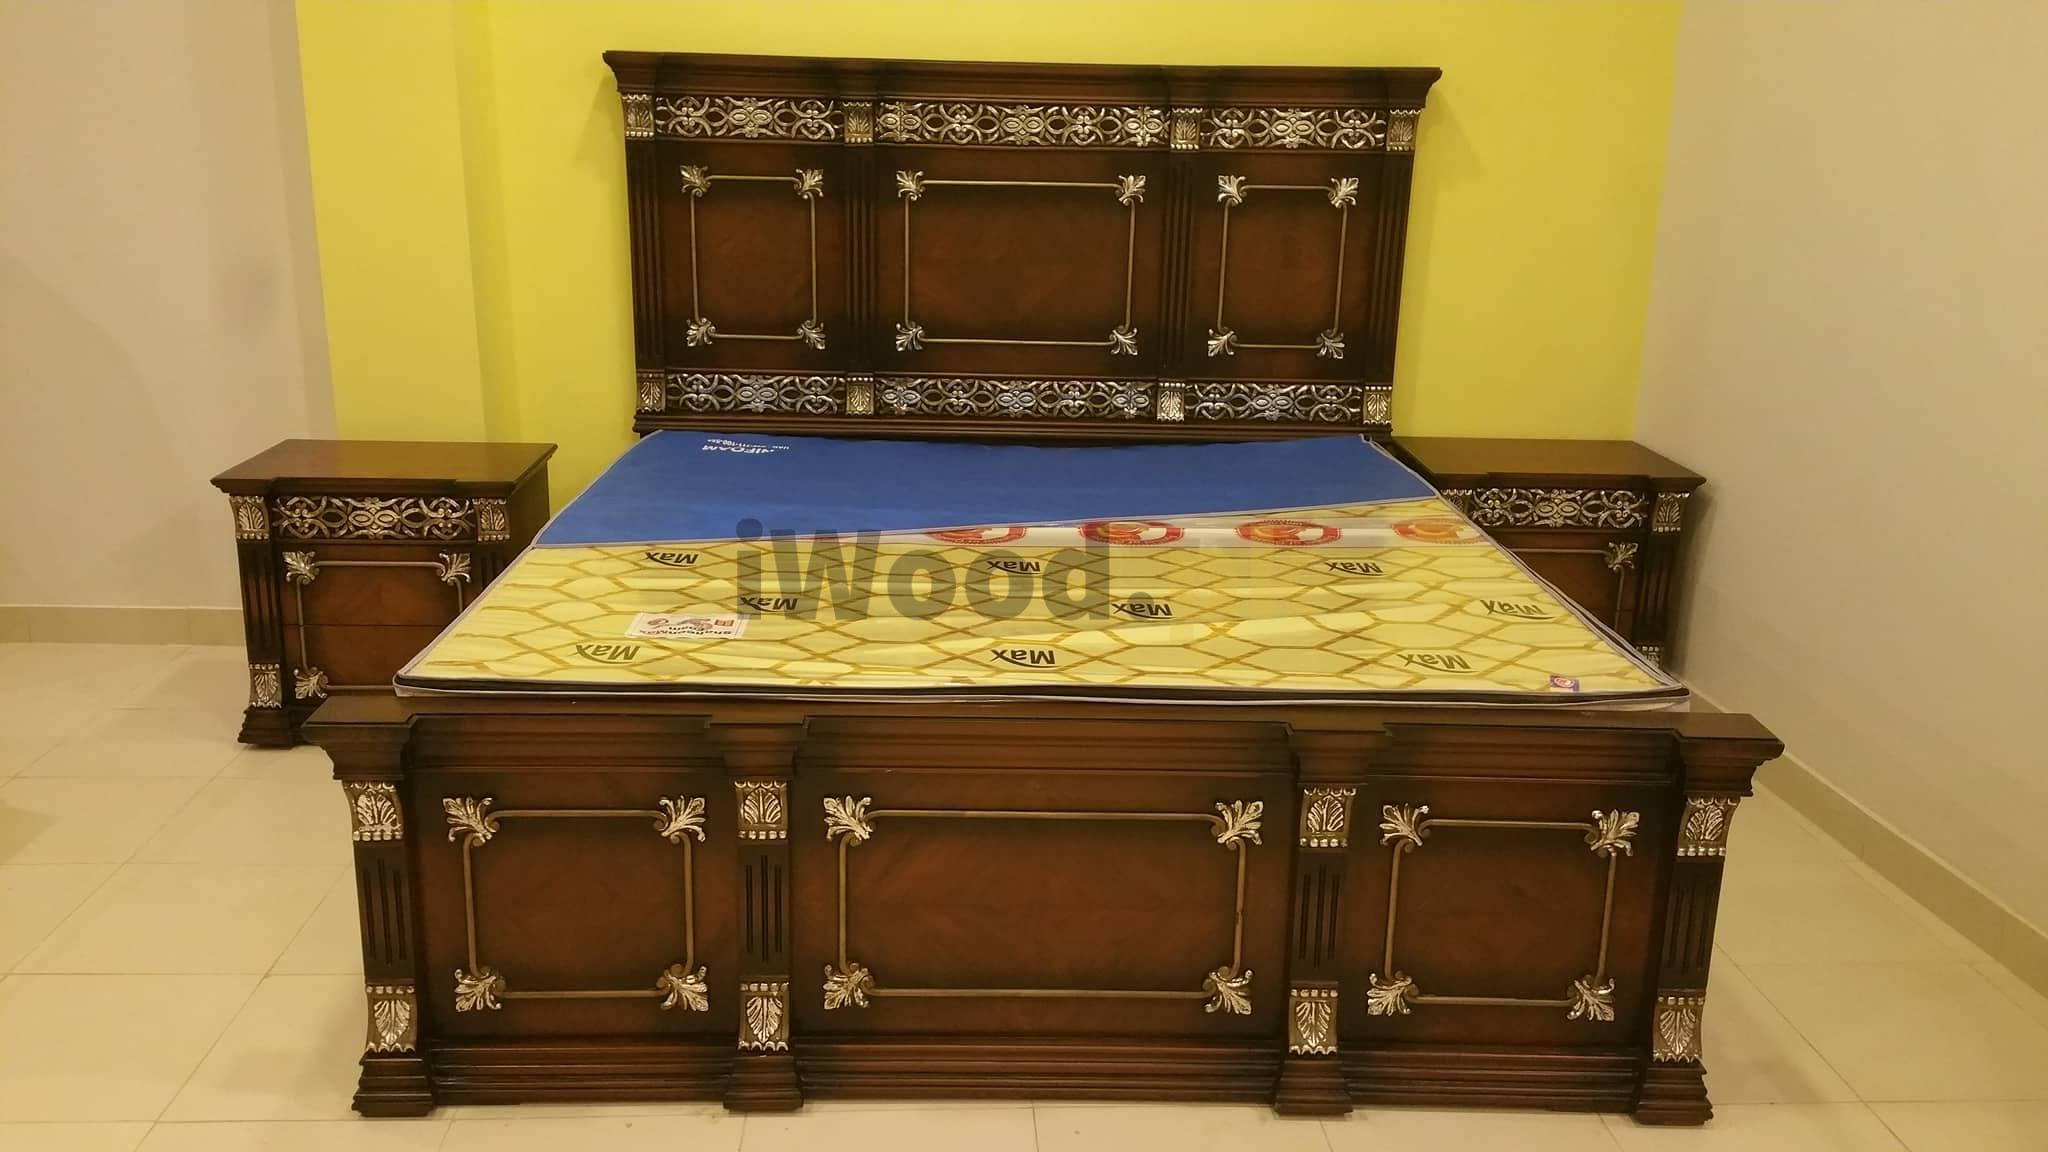 Enjoyable Bedroom Set On Best Price In Karachi Interior Design Ideas Jittwwsoteloinfo